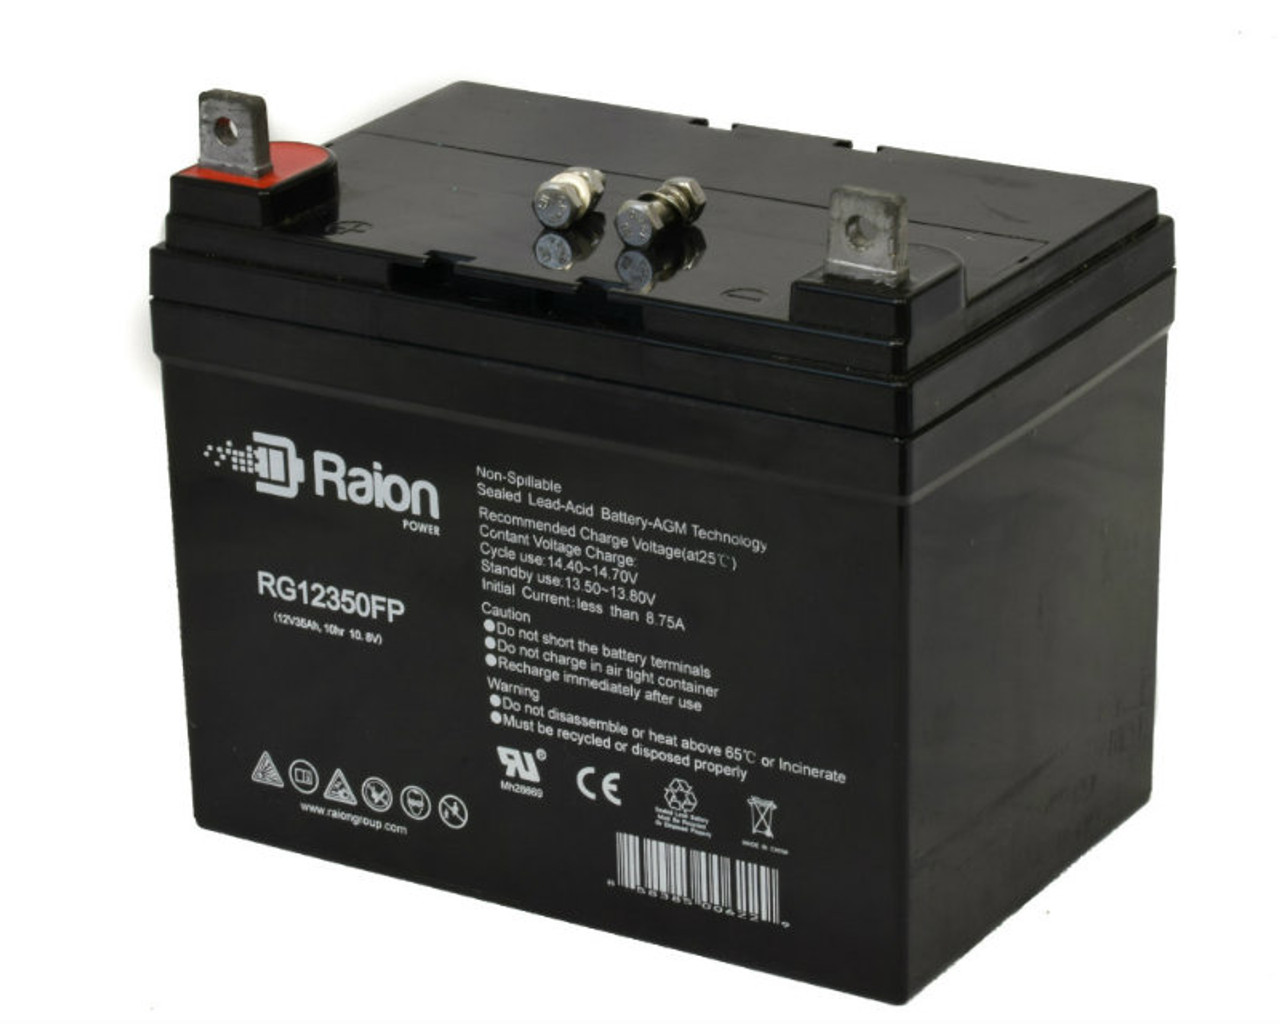 RG12350FP Sealed Lead Acid Battery Pack For Electric Mobility Rascal 600F Scooter Mobility Scooter